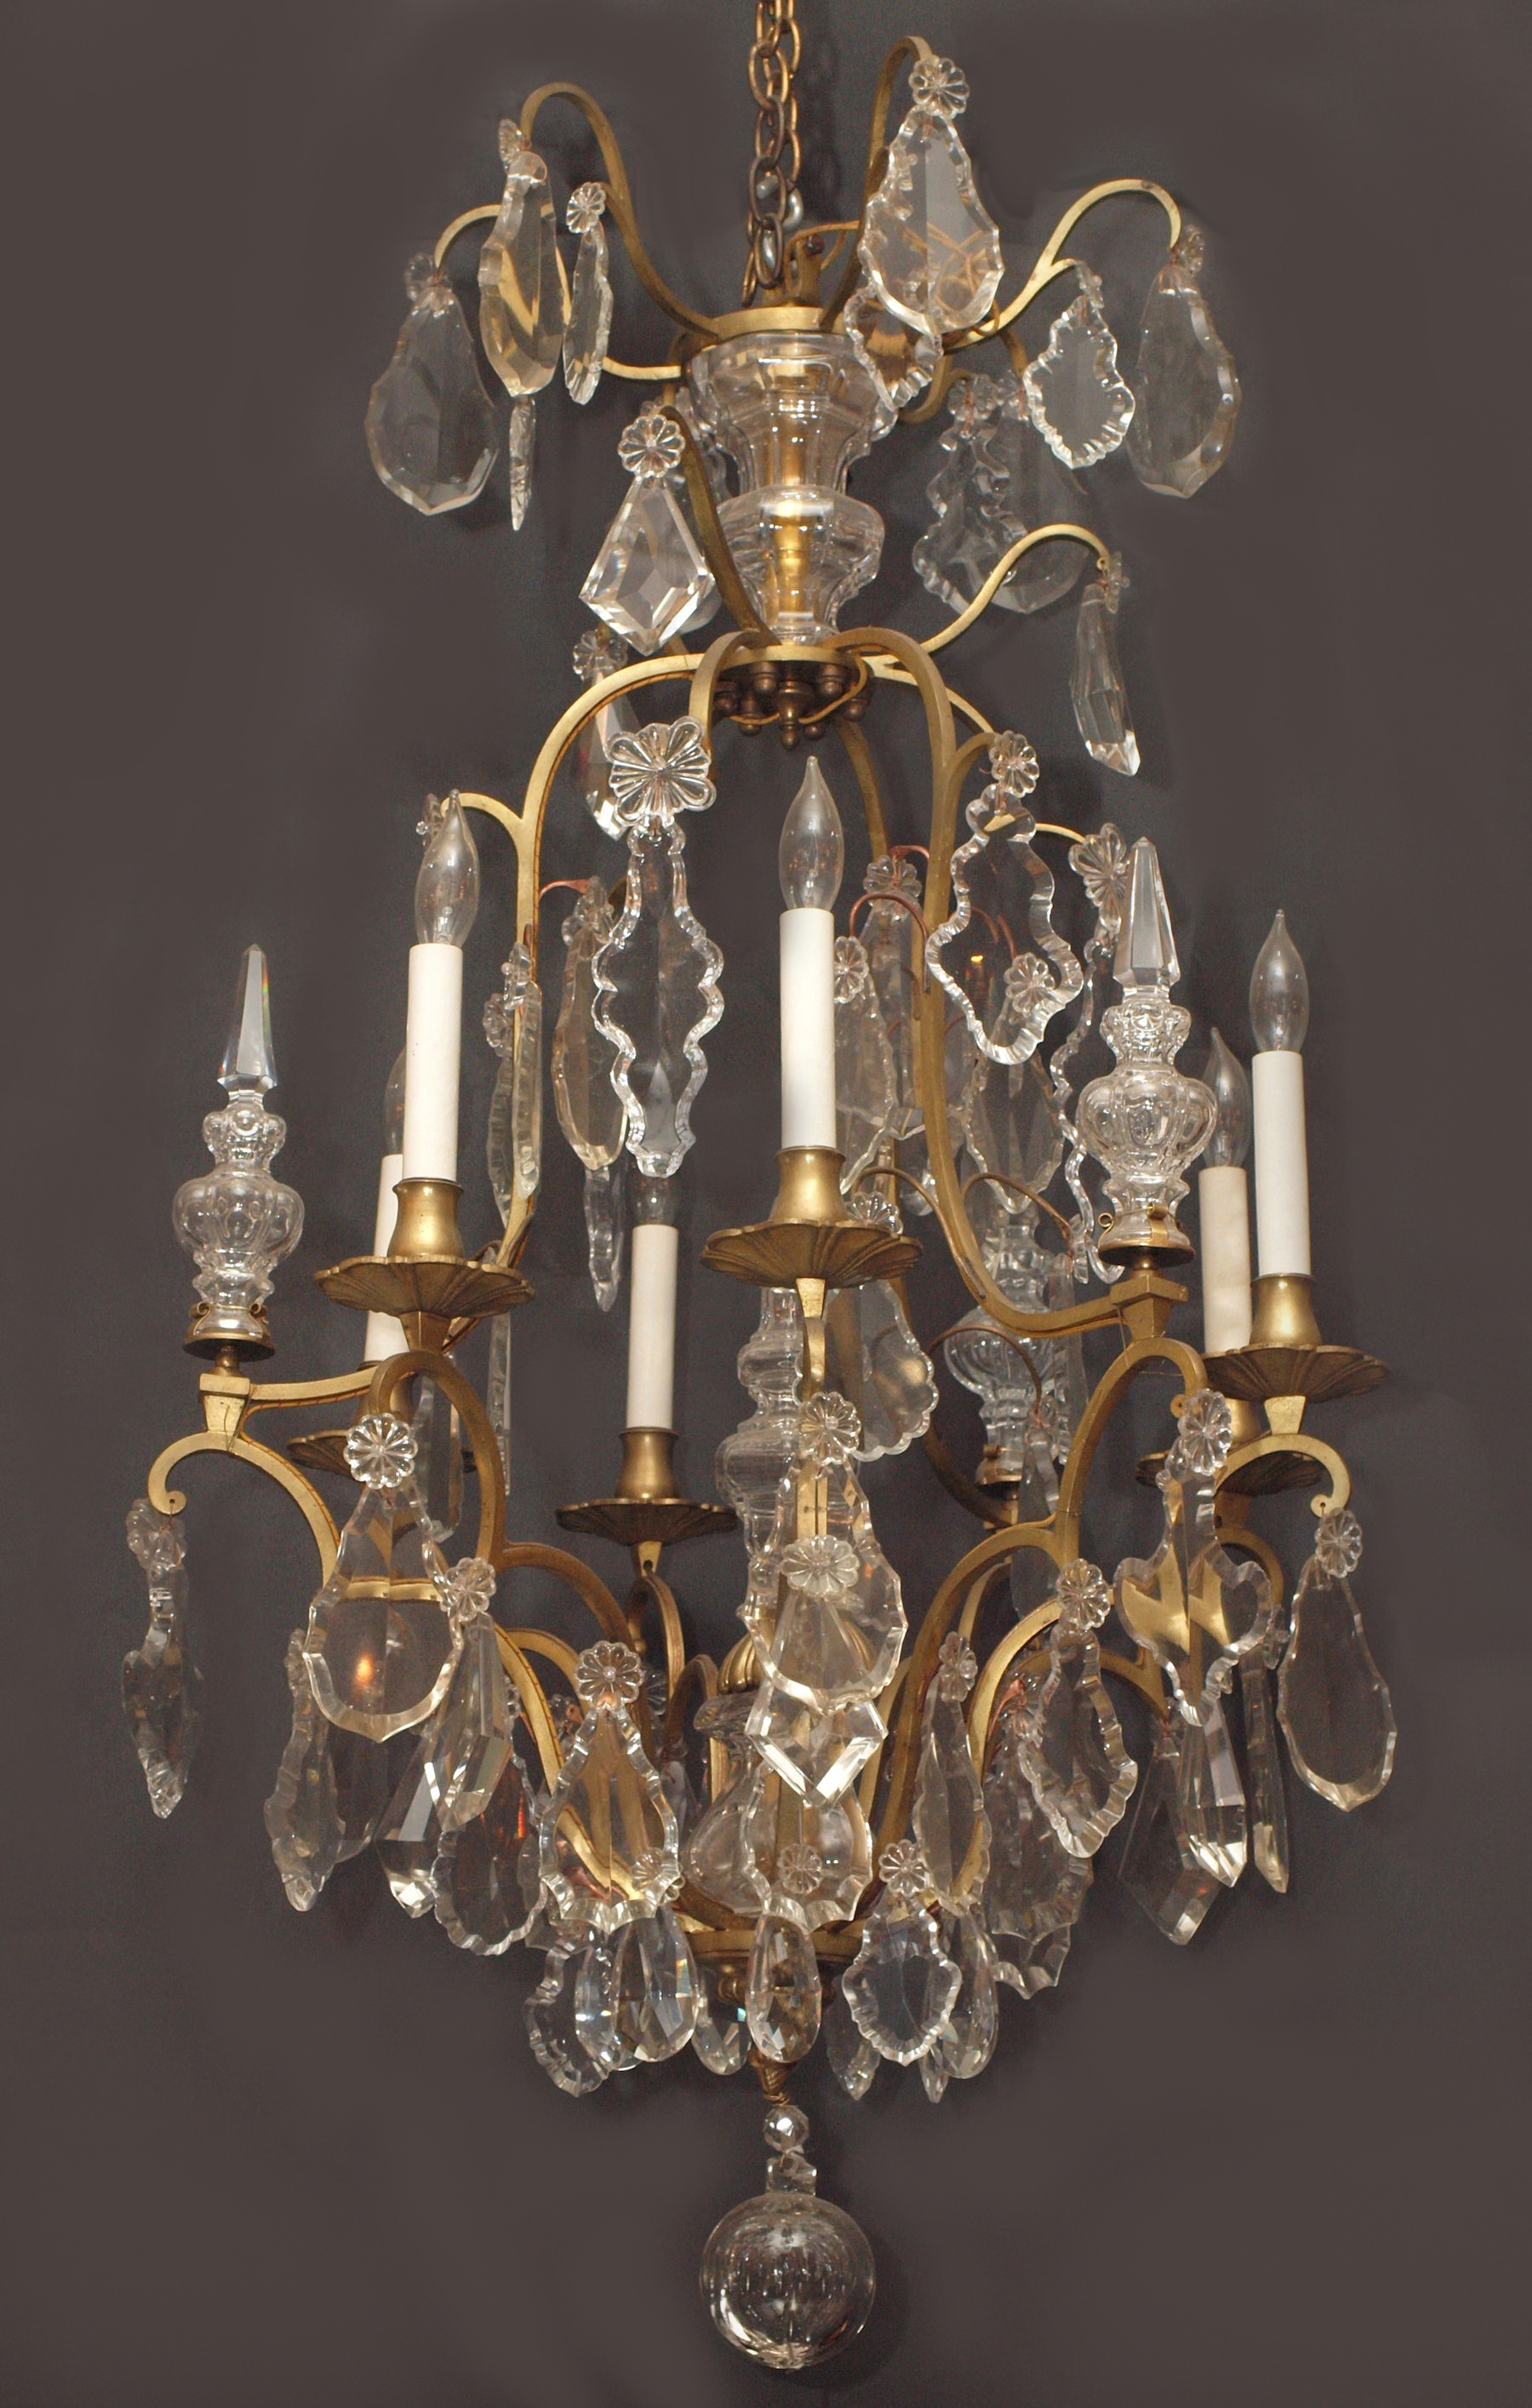 Antiques Classifieds Antiques Antique Lamps And Lighting With French Chandeliers (#1 of 12)